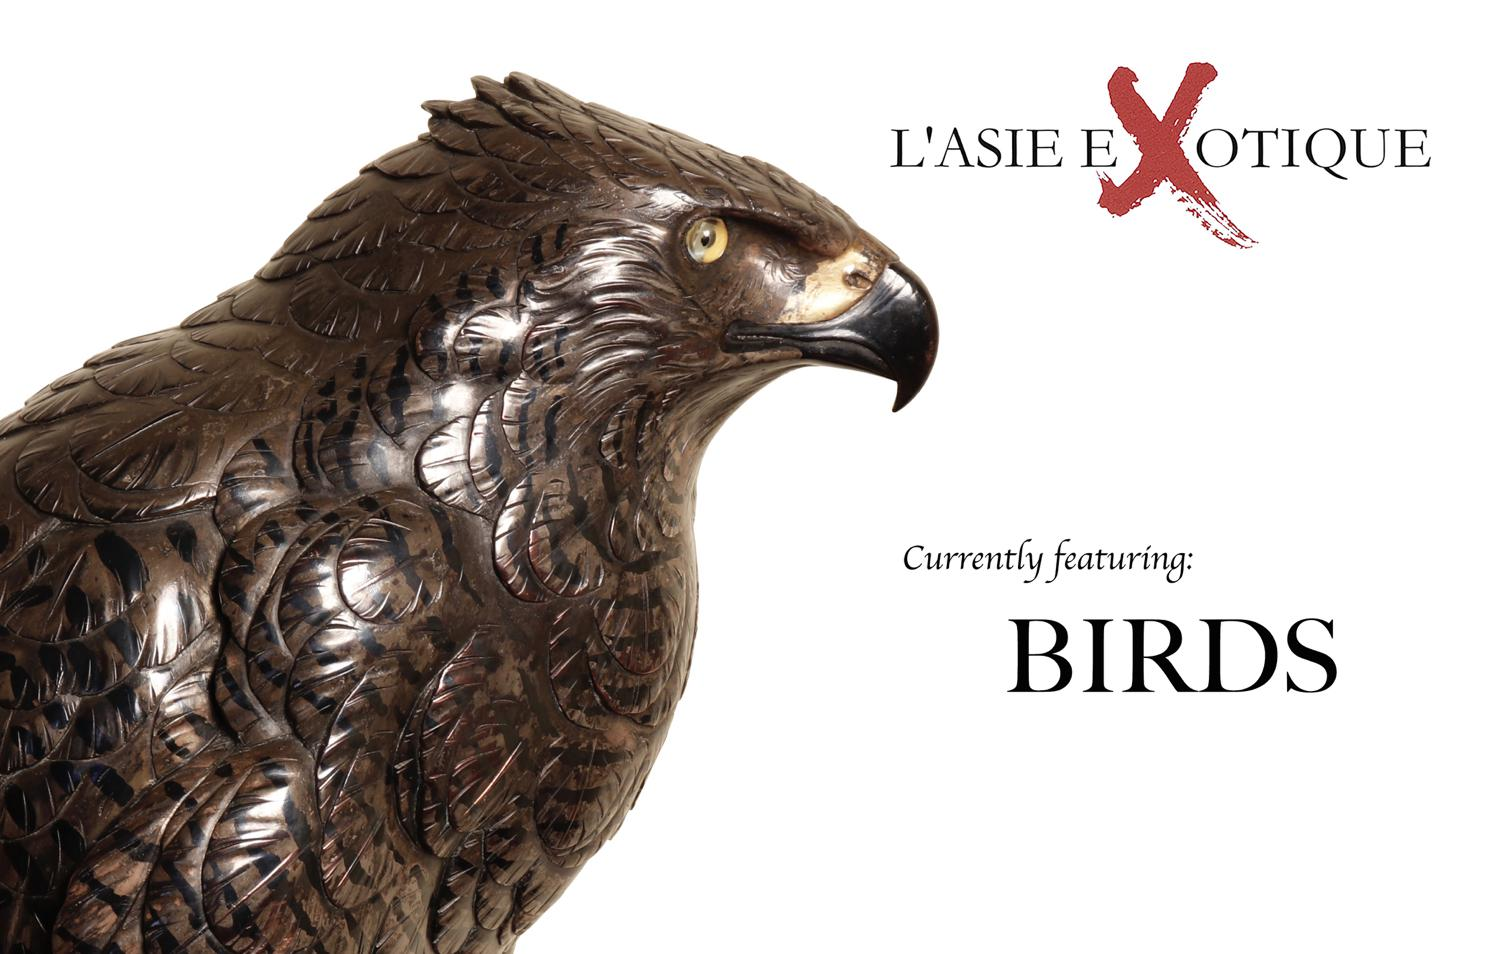 L'Asie Exotique Home Page Image